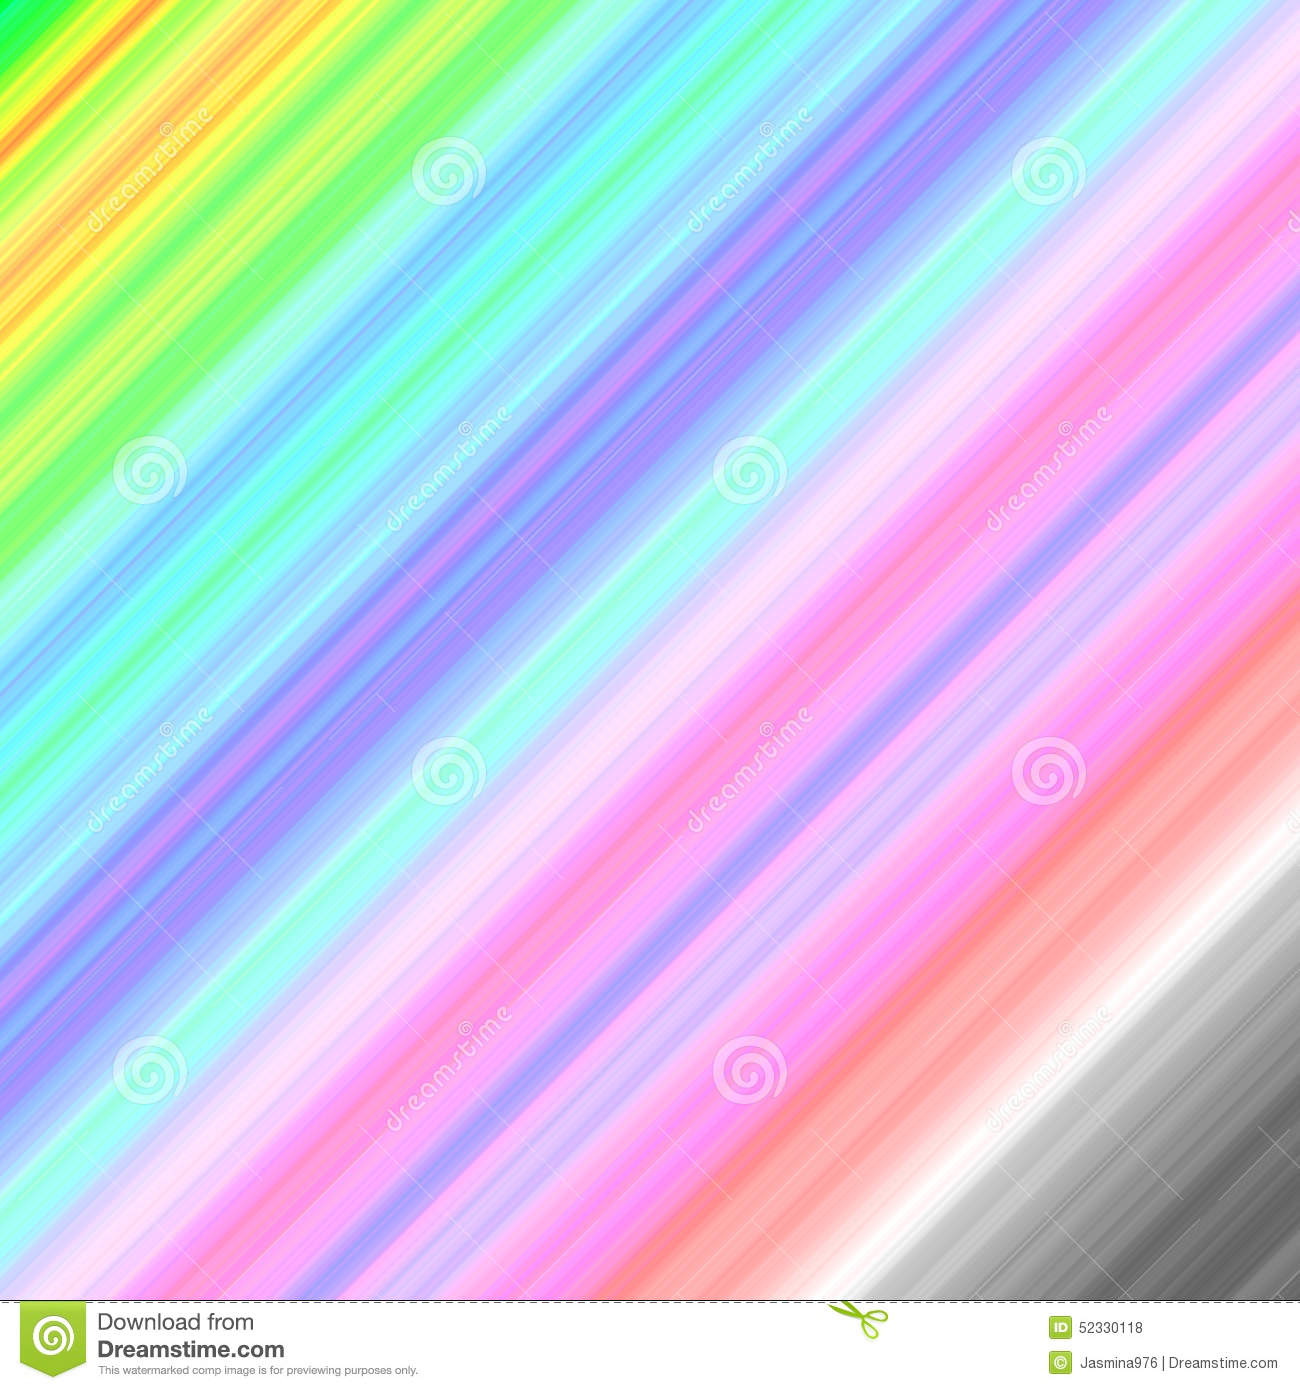 Pastel pink striped background seamless vector pastel stripes - Colorful Striped Spring Background In Pastel Colors Stock